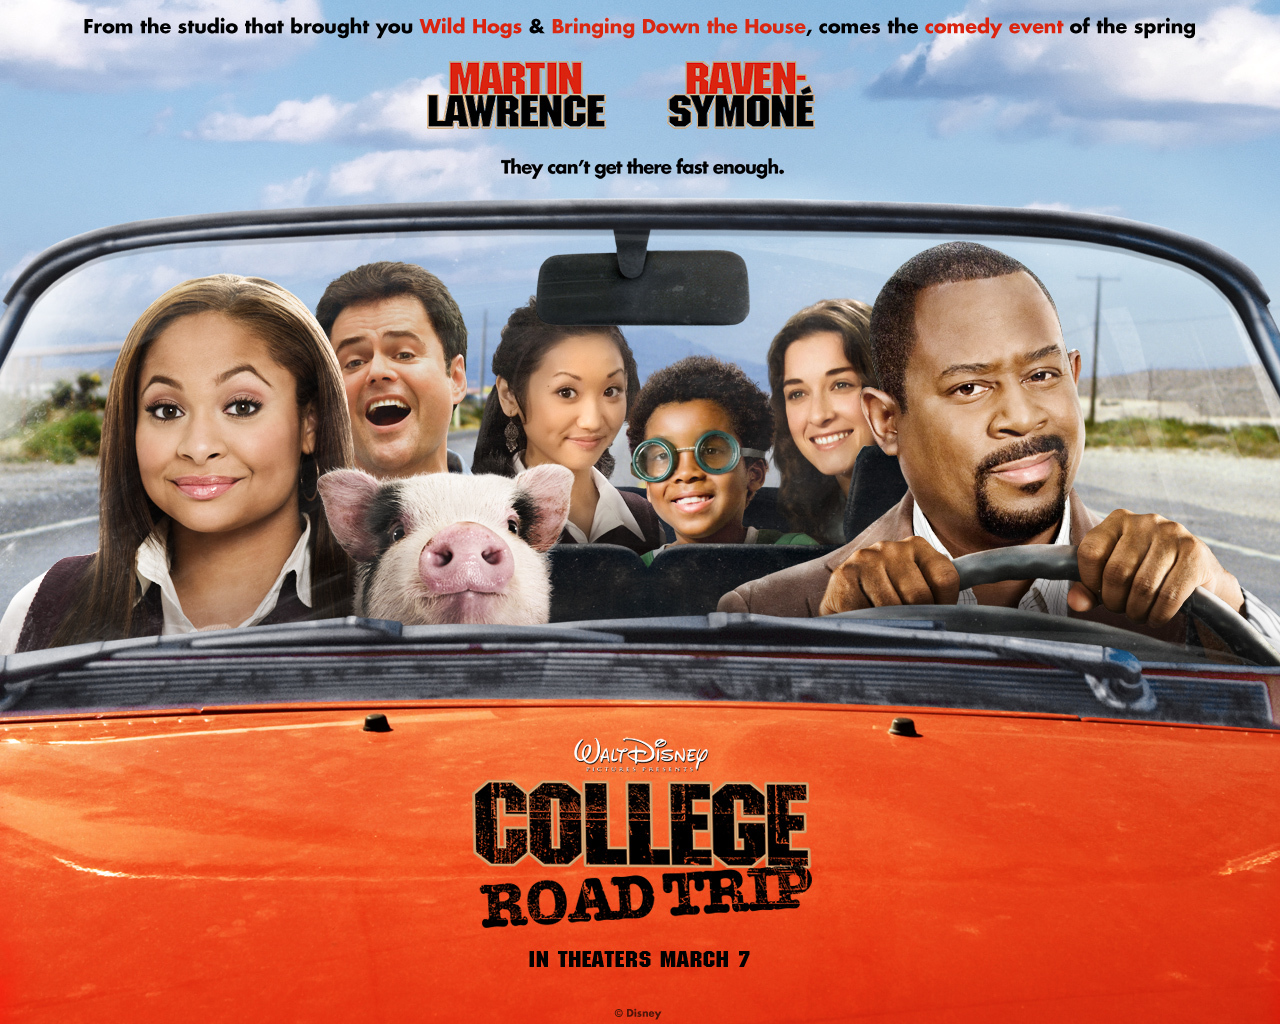 comedy, raven symone, and movie image